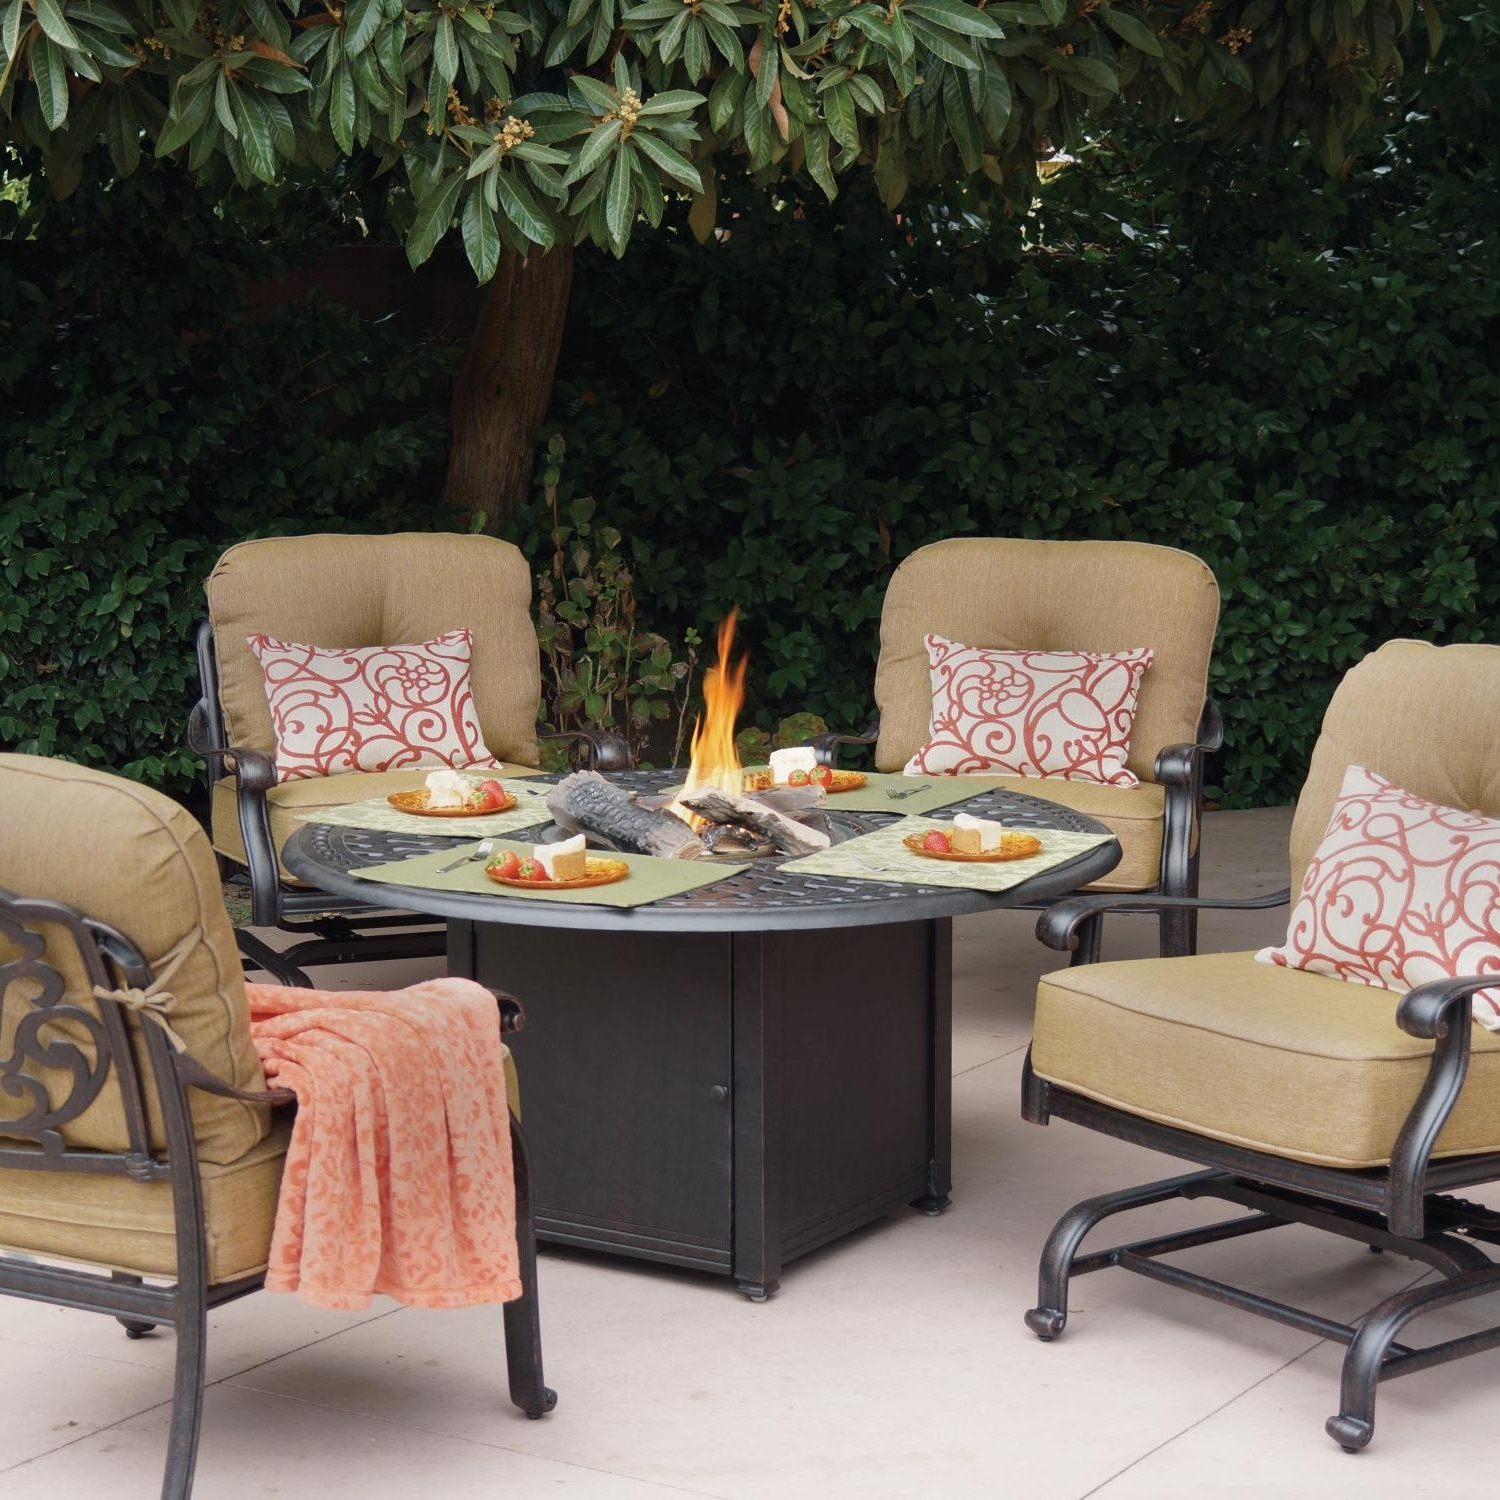 Patio Conversation Sets With Fire Pit Within Preferred Darlee Elisabeth 5 Piece Aluminum Patio Fire Pit Seating Set (View 3 of 20)